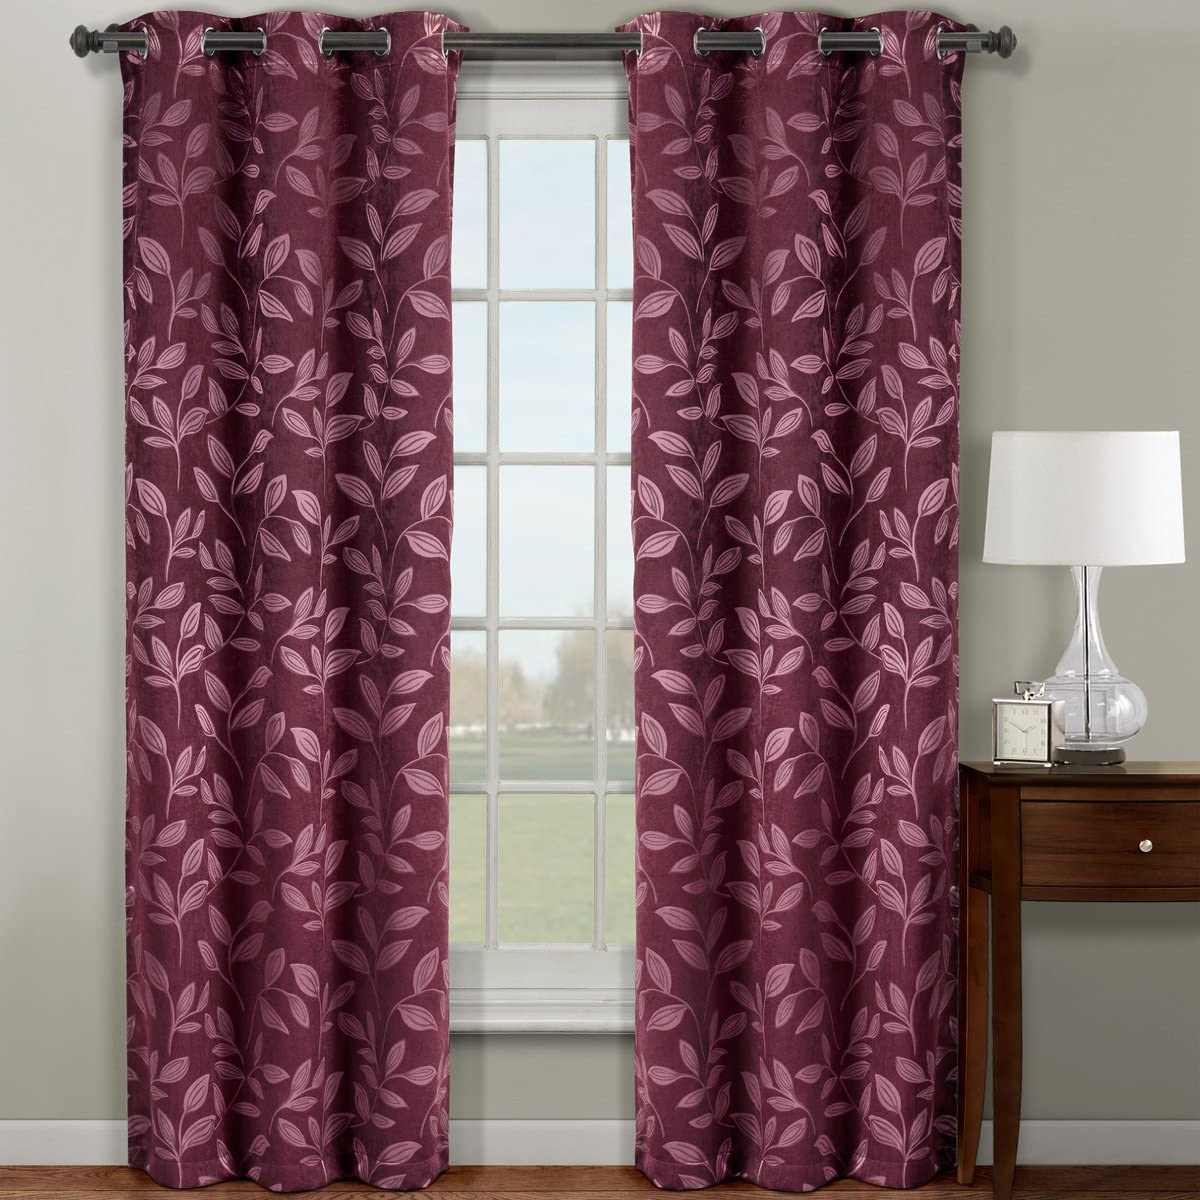 Pair of Two Top Grommet Claire Micro Suede Jacquard Blackout Weave Thermal Insulated Curtain Panels, Elegant Contemporary Claire Panels, Set of Two Burgundy 36 by 84 Panels 72 by 84 Pair